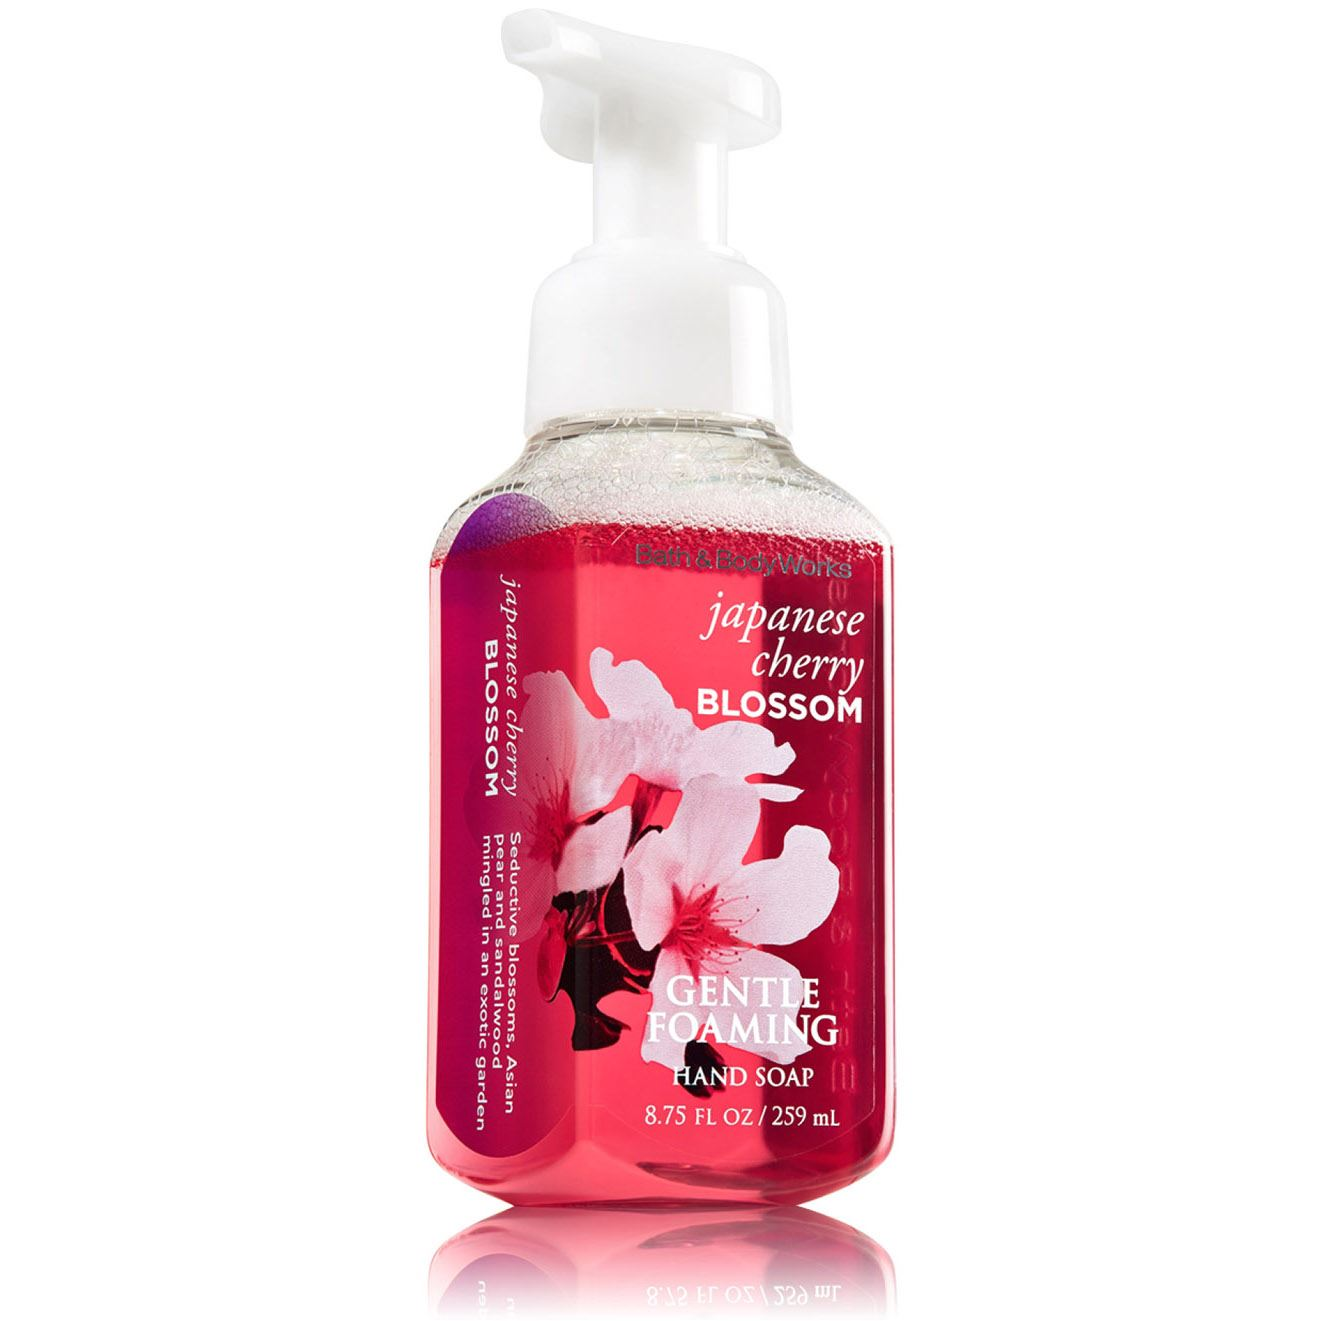 Bath Amp Body Works Deep Cleansing And Gentle Foaming Hand